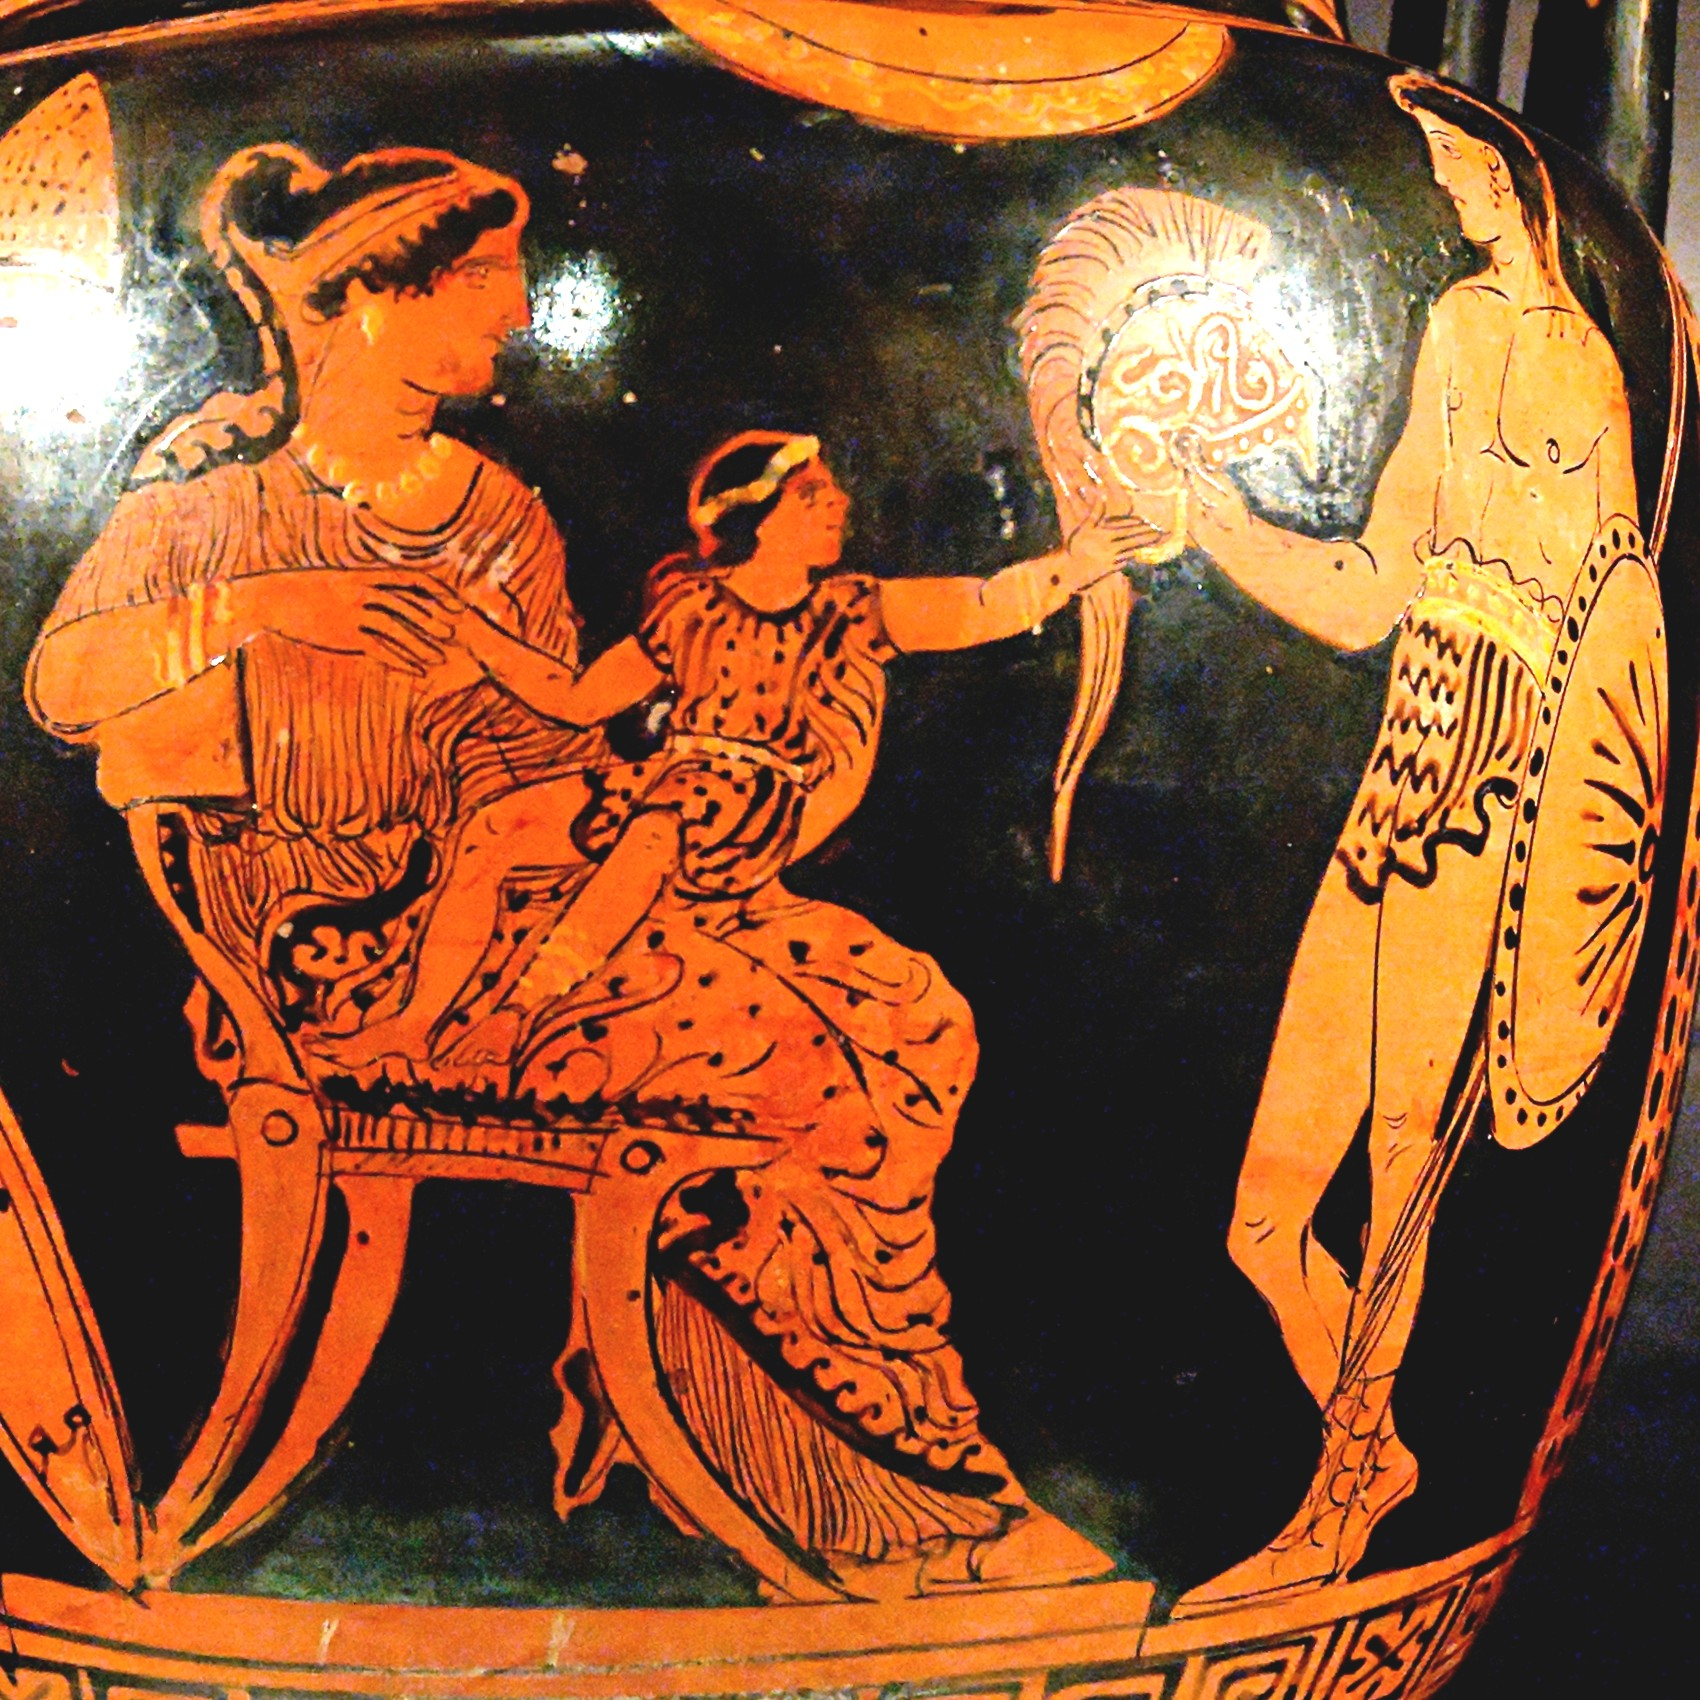 Astyanax with Hector and Andromache